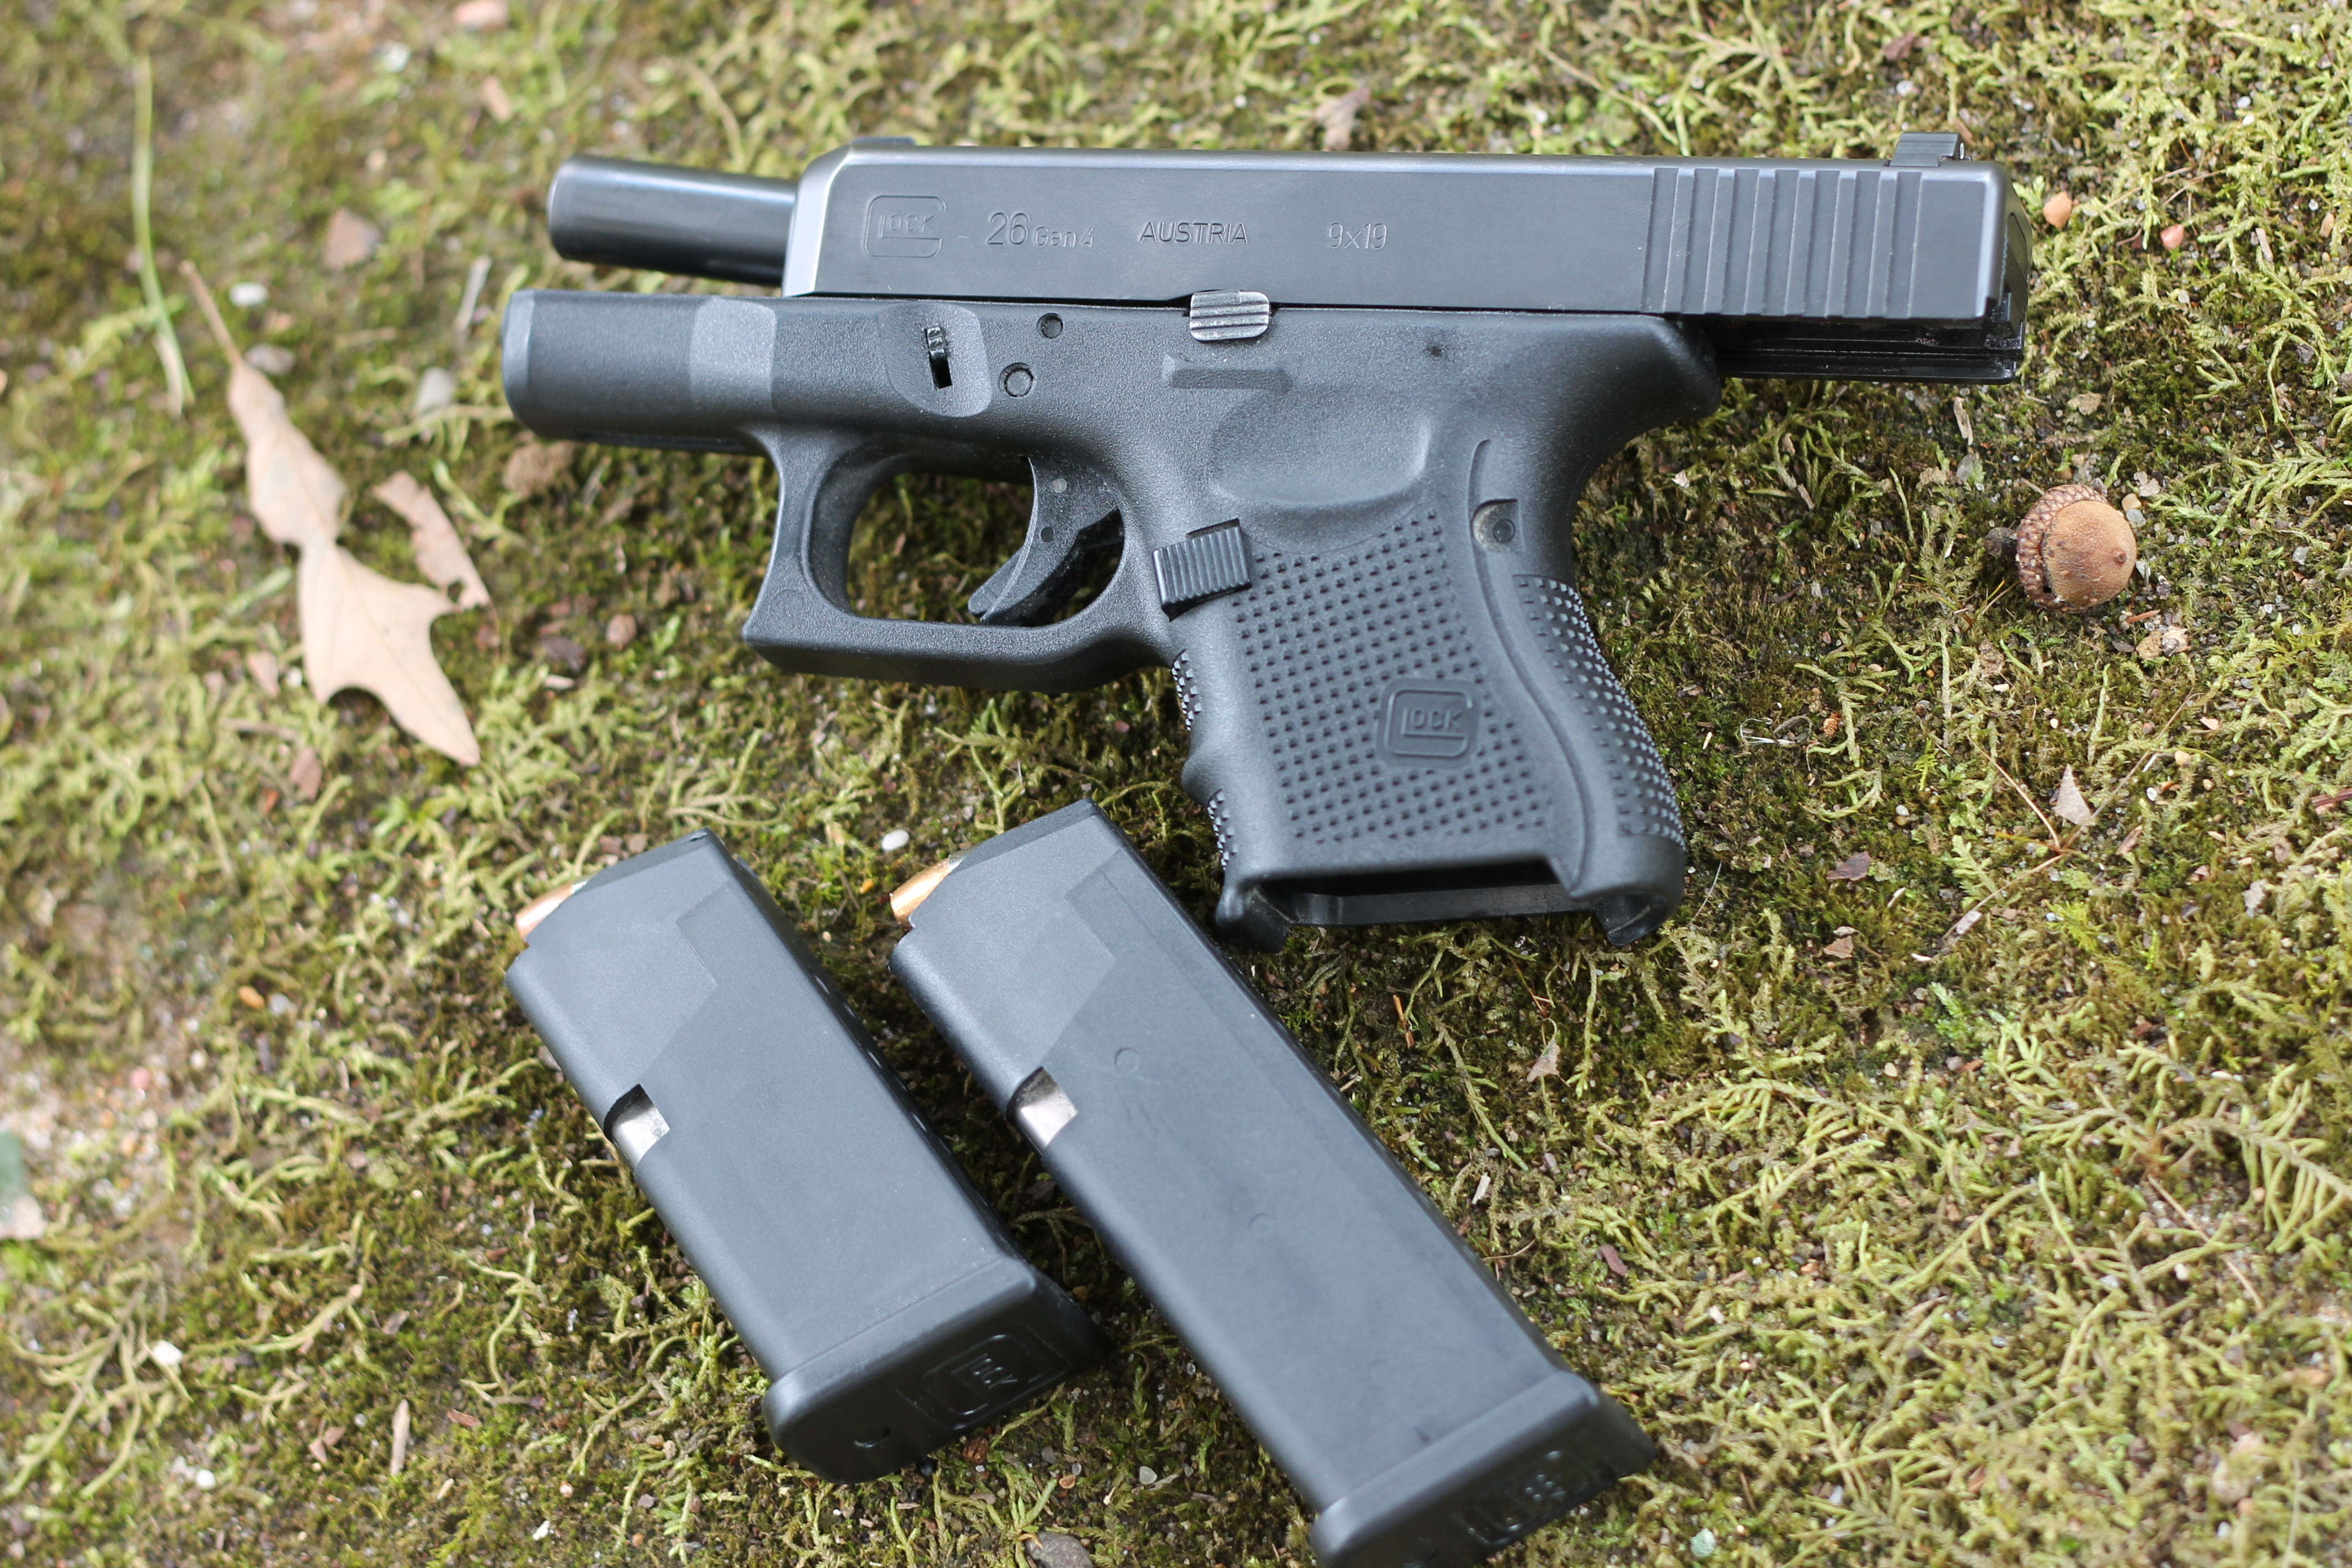 Glock 26 Gen 4 Concealed Carry Handgun Review - TactiPac